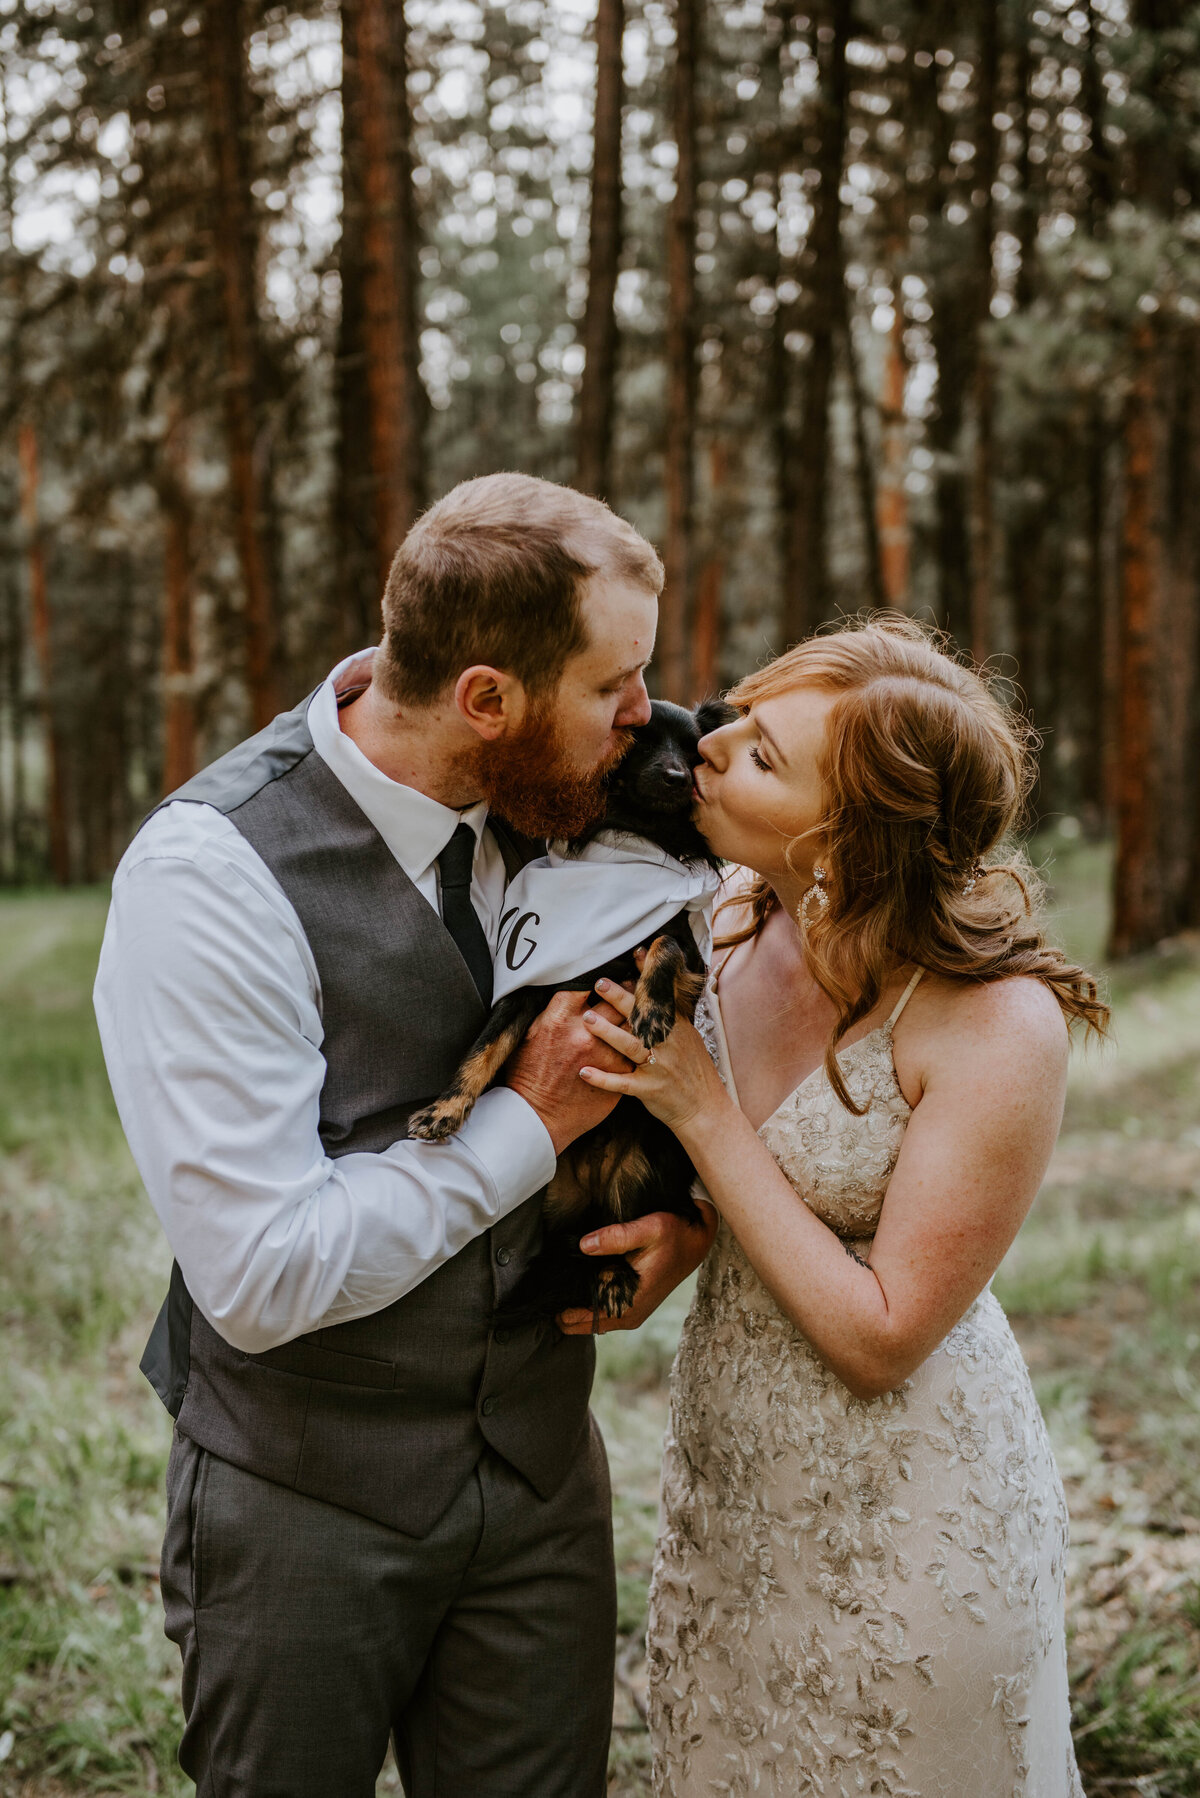 ochoco-forest-central-oregon-elopement-pnw-woods-wedding-covid-bend-photographer-inspiration2929